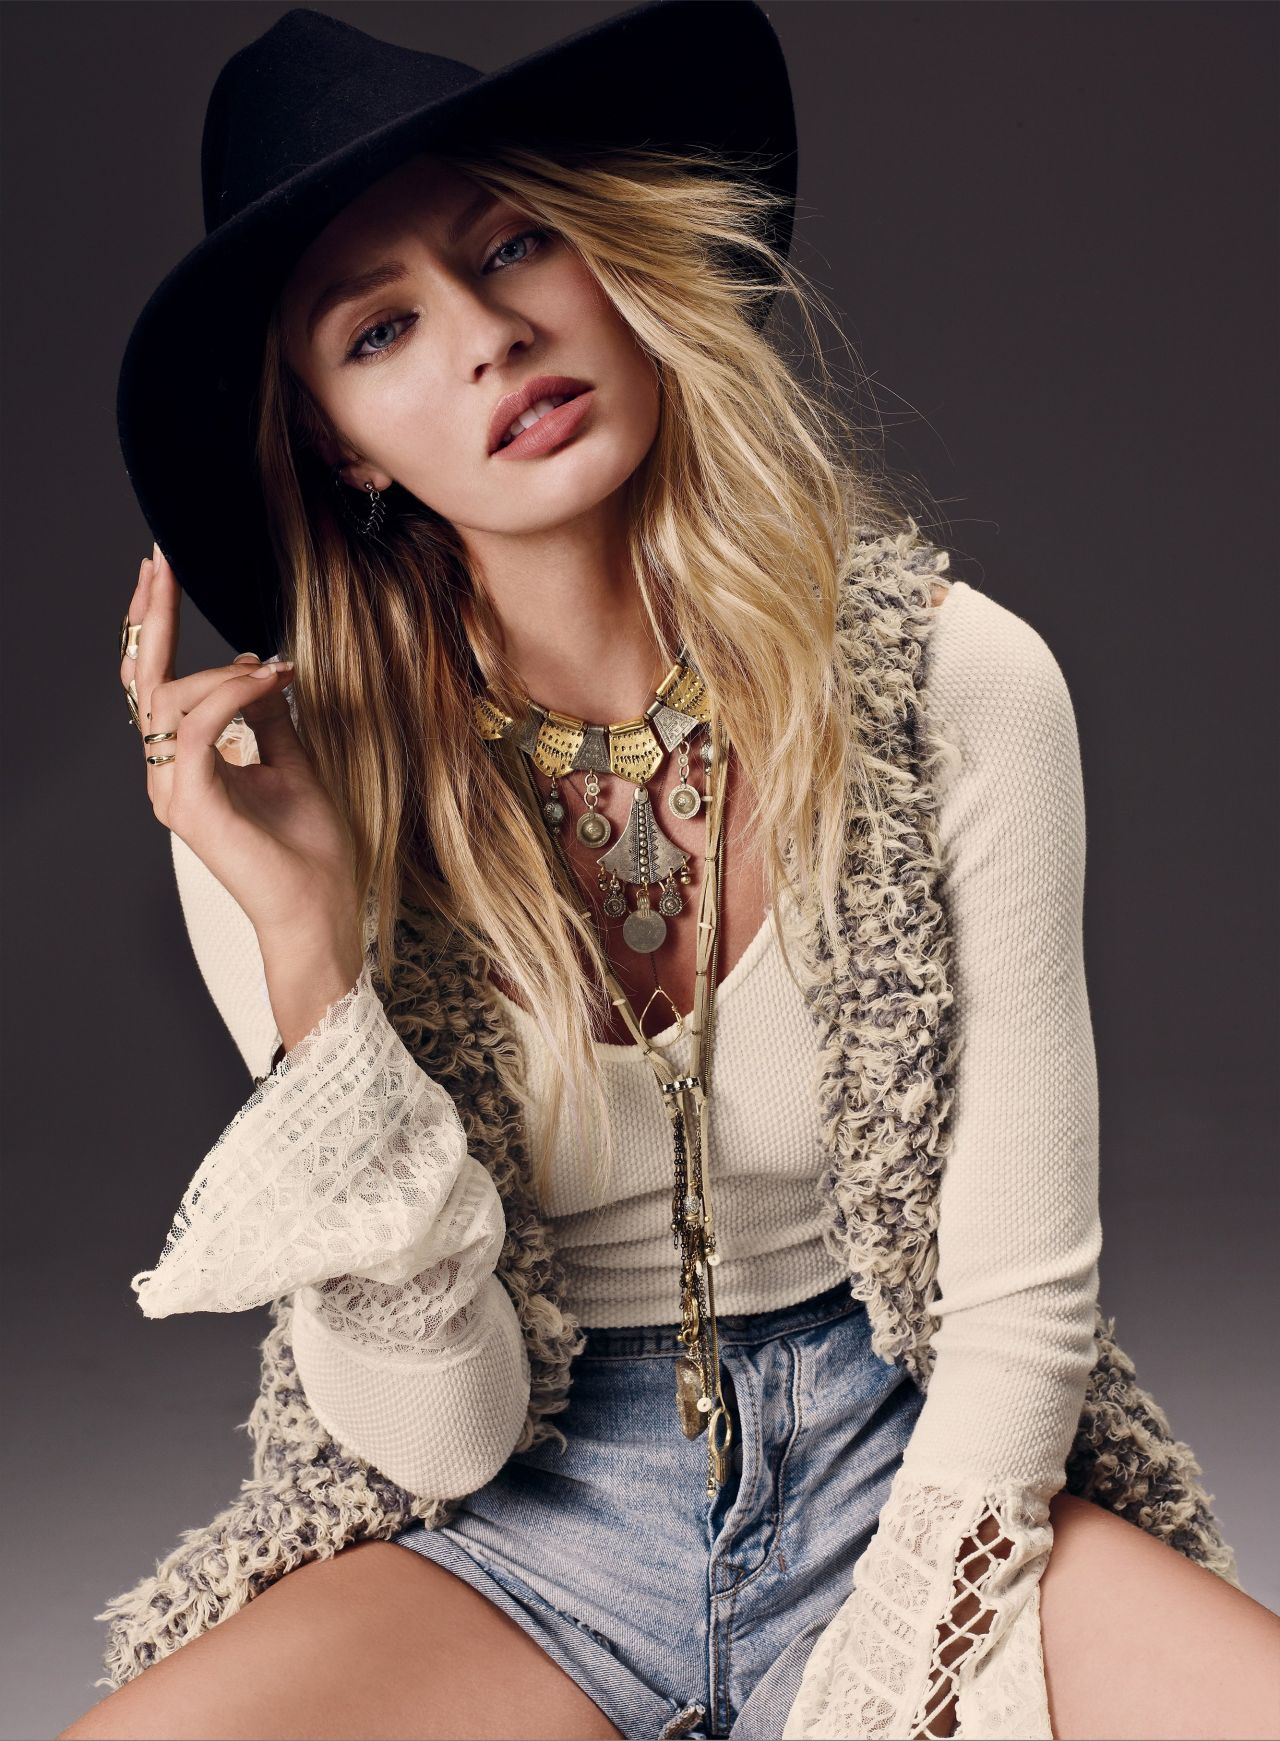 American Girl Wallpaper Com Candice Swanepoel Is Western Girl For Free People